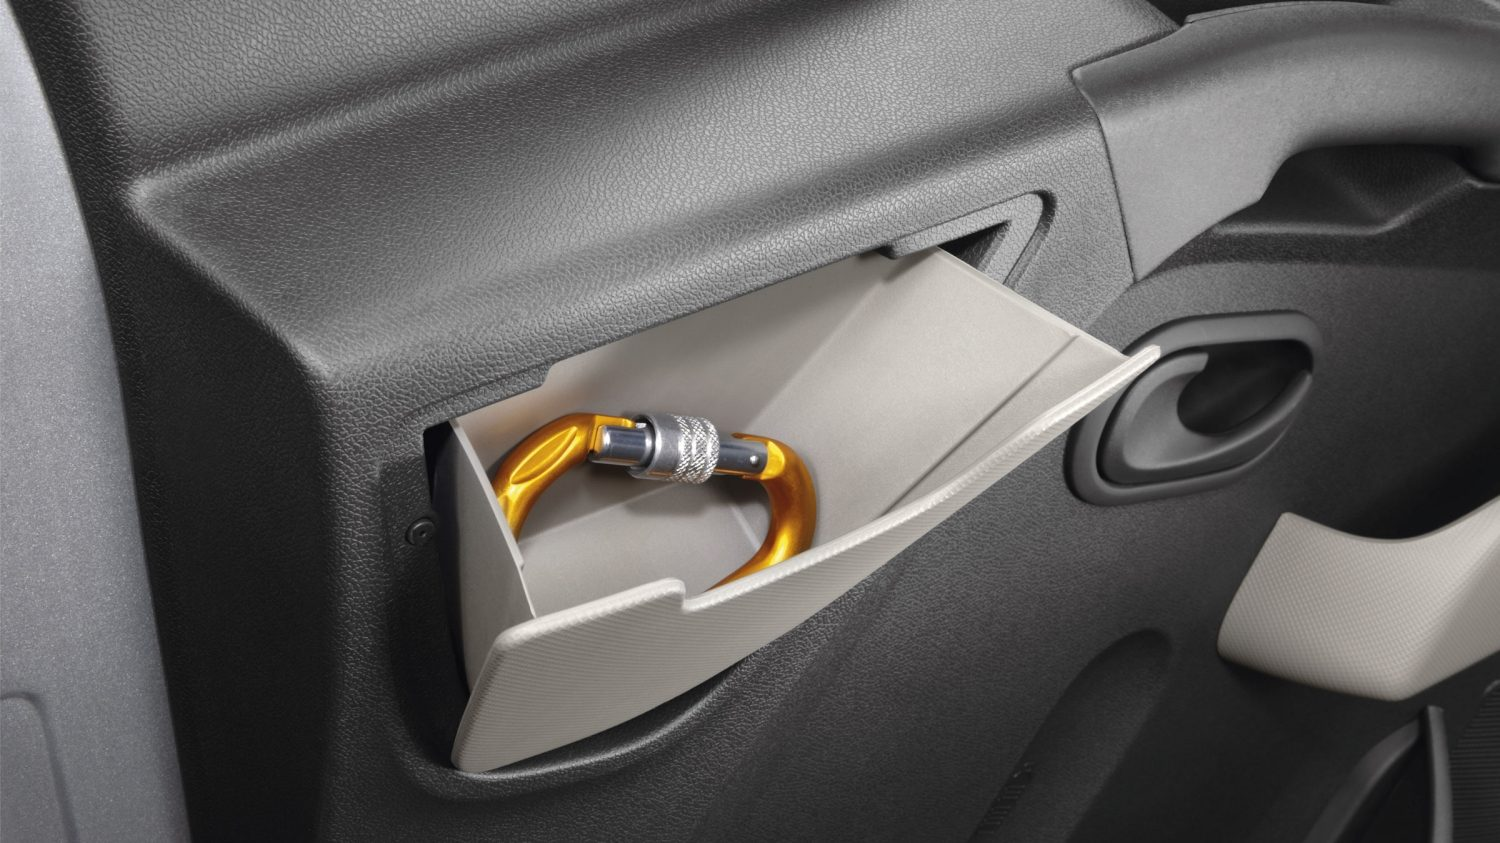 Nissan NV400 - Third pocket in the door